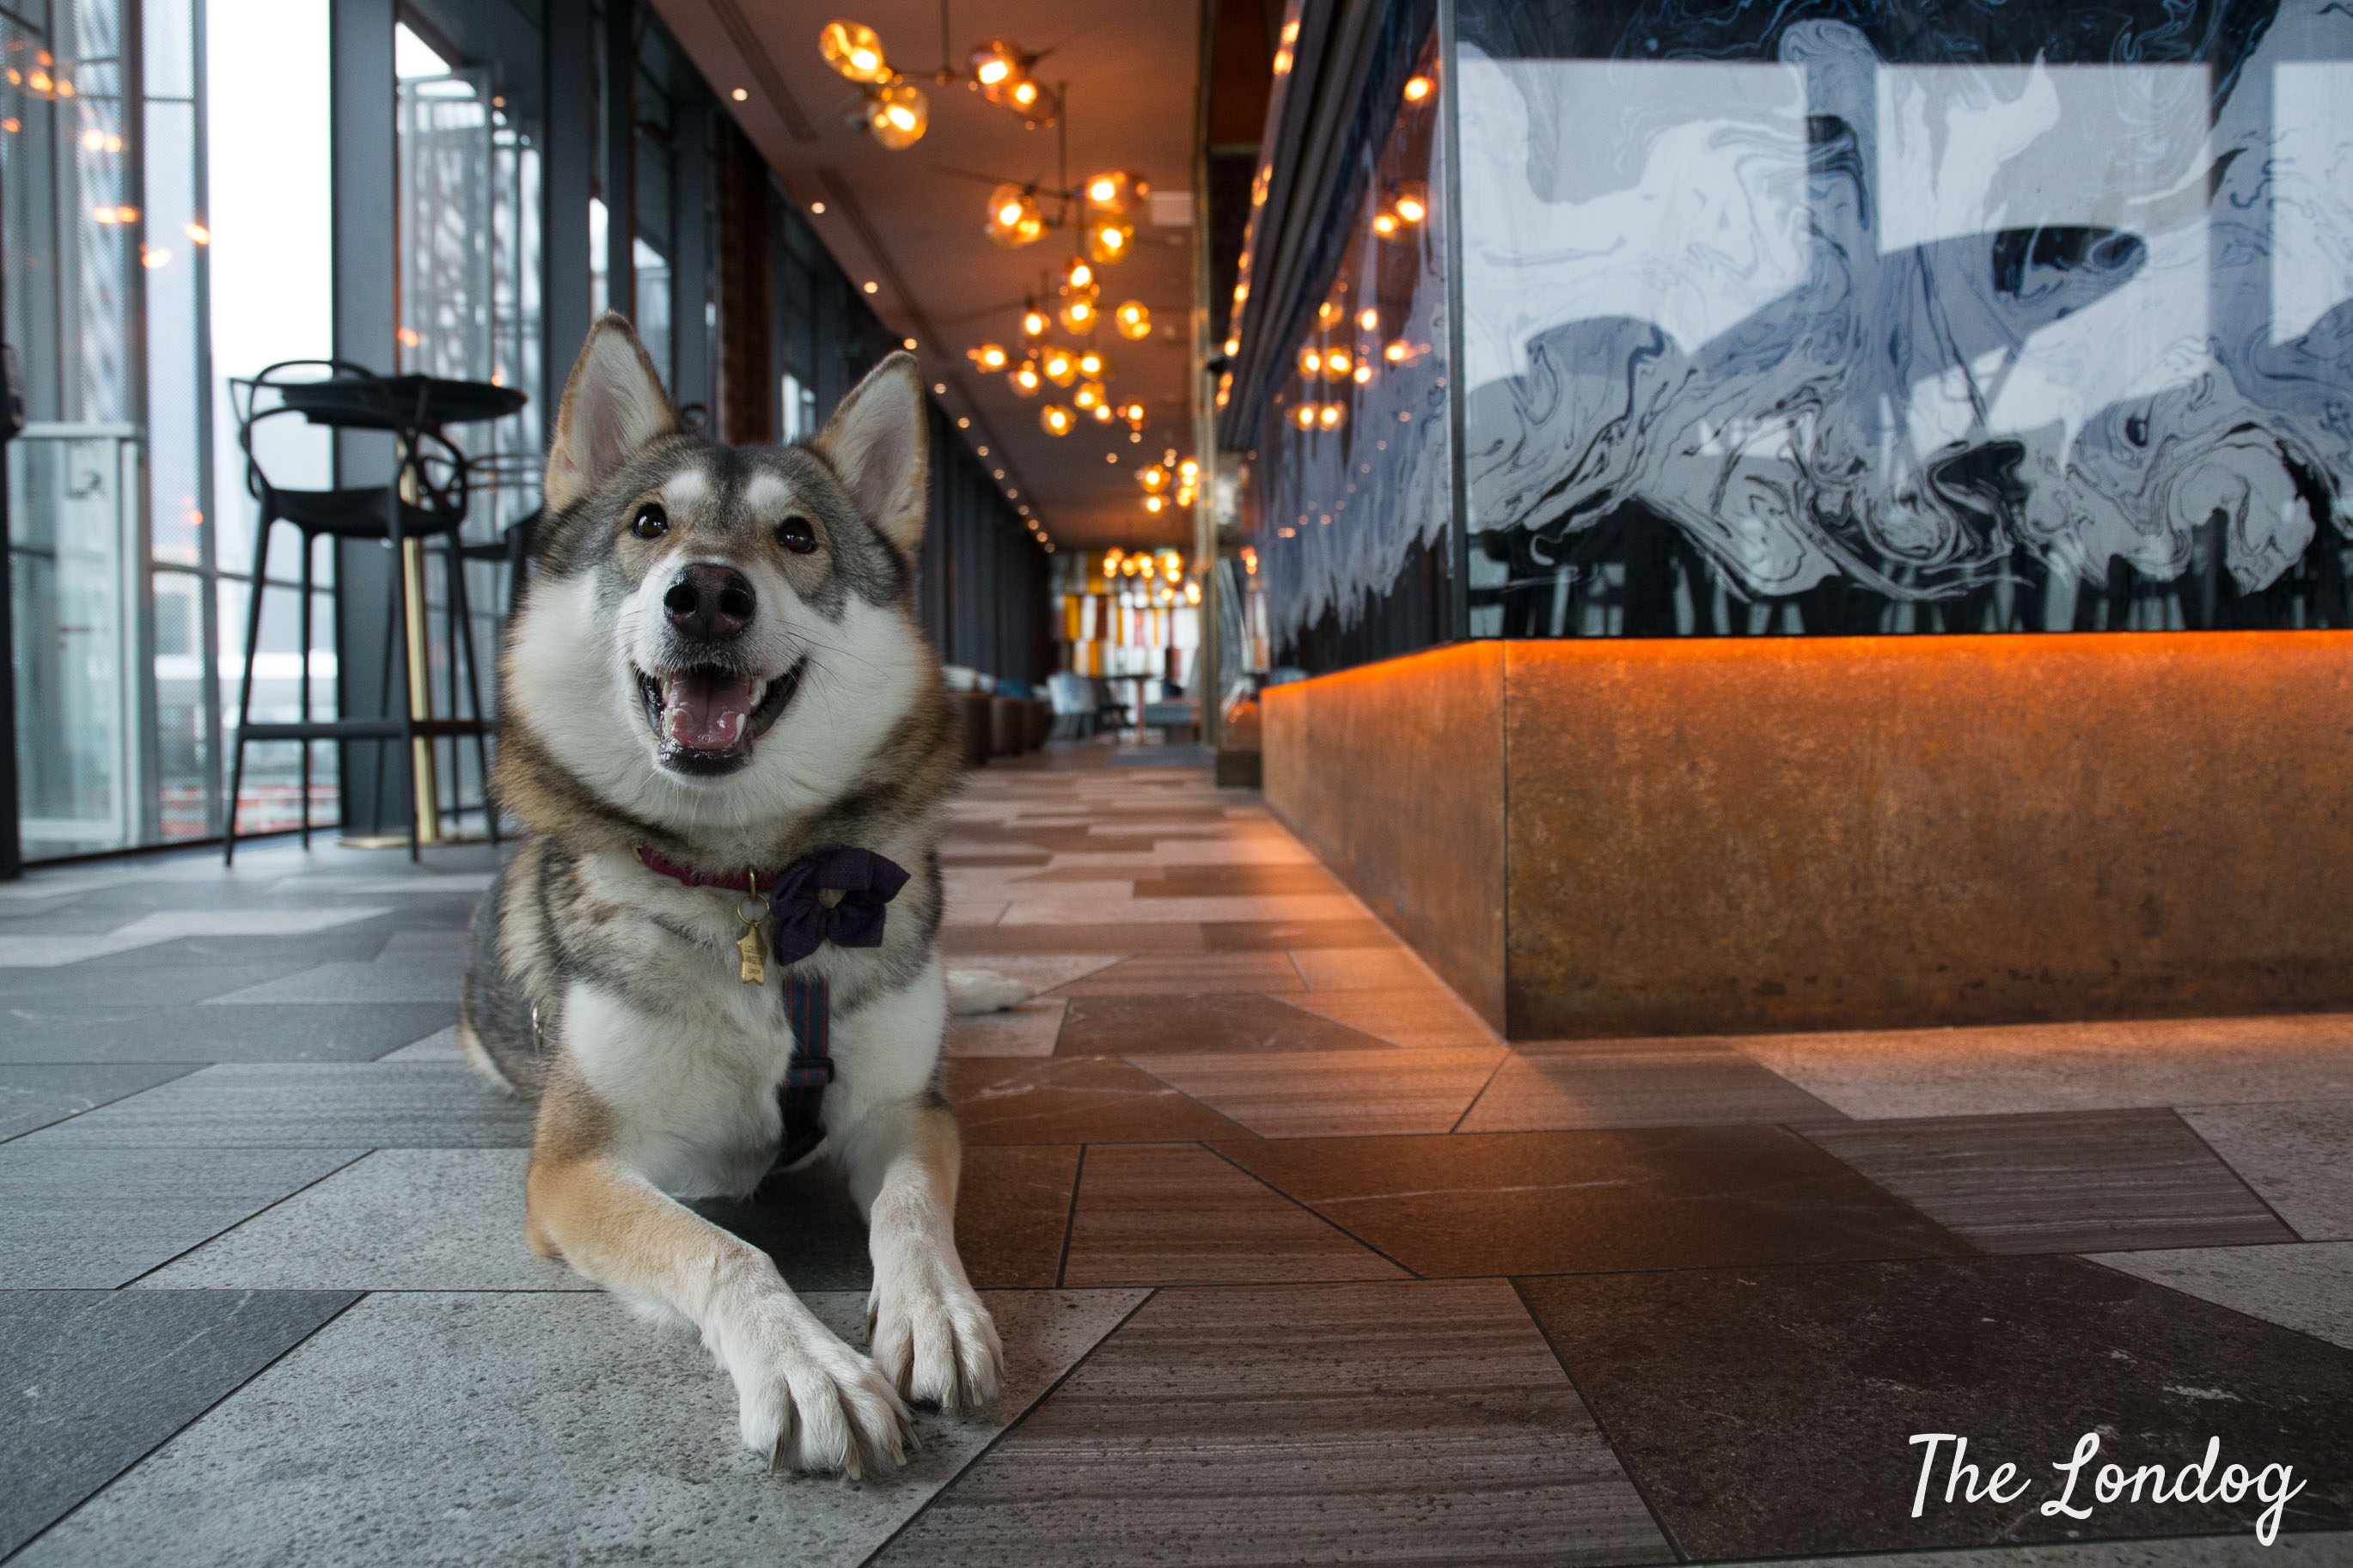 Dog lies on the floor in the indoor area of Savage Garden rooftop, near the bar counter